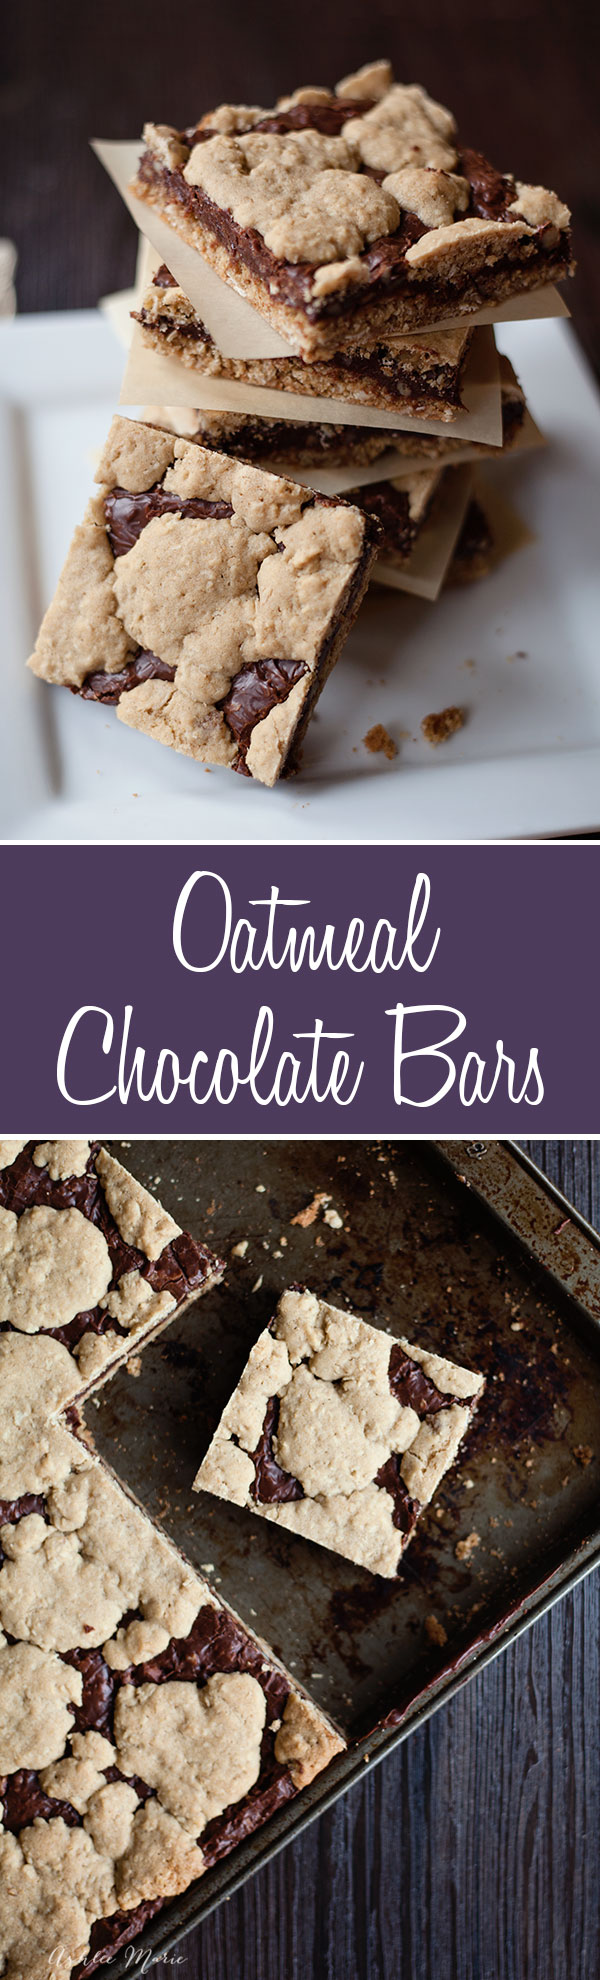 this oatmeal chocolate bar recipe makes a hgue pan and everyone loves it, perfect to make for a crowd